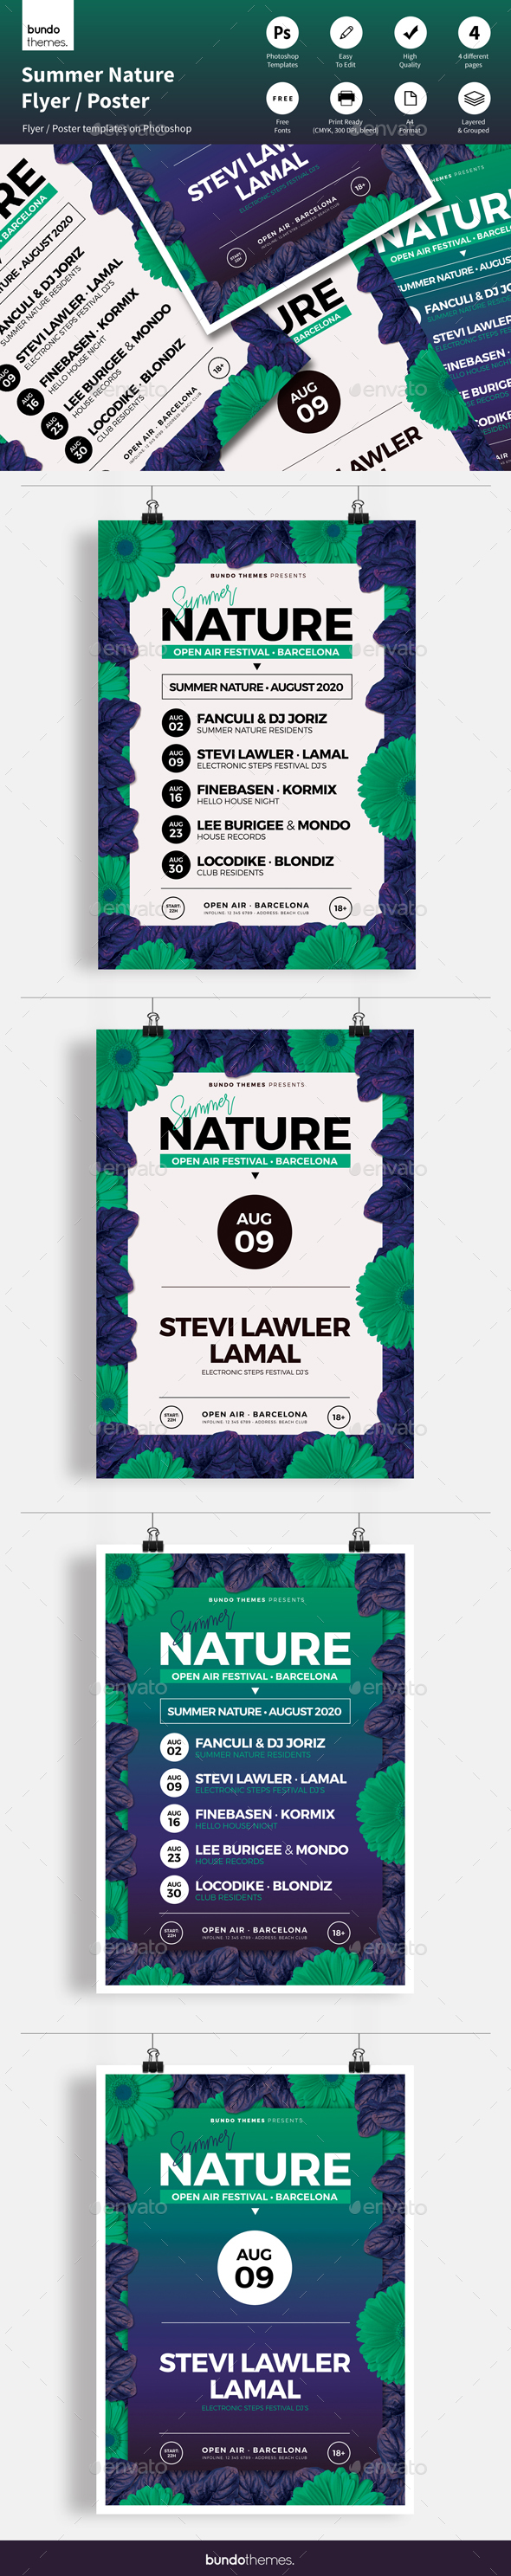 Summer Nature Flyer